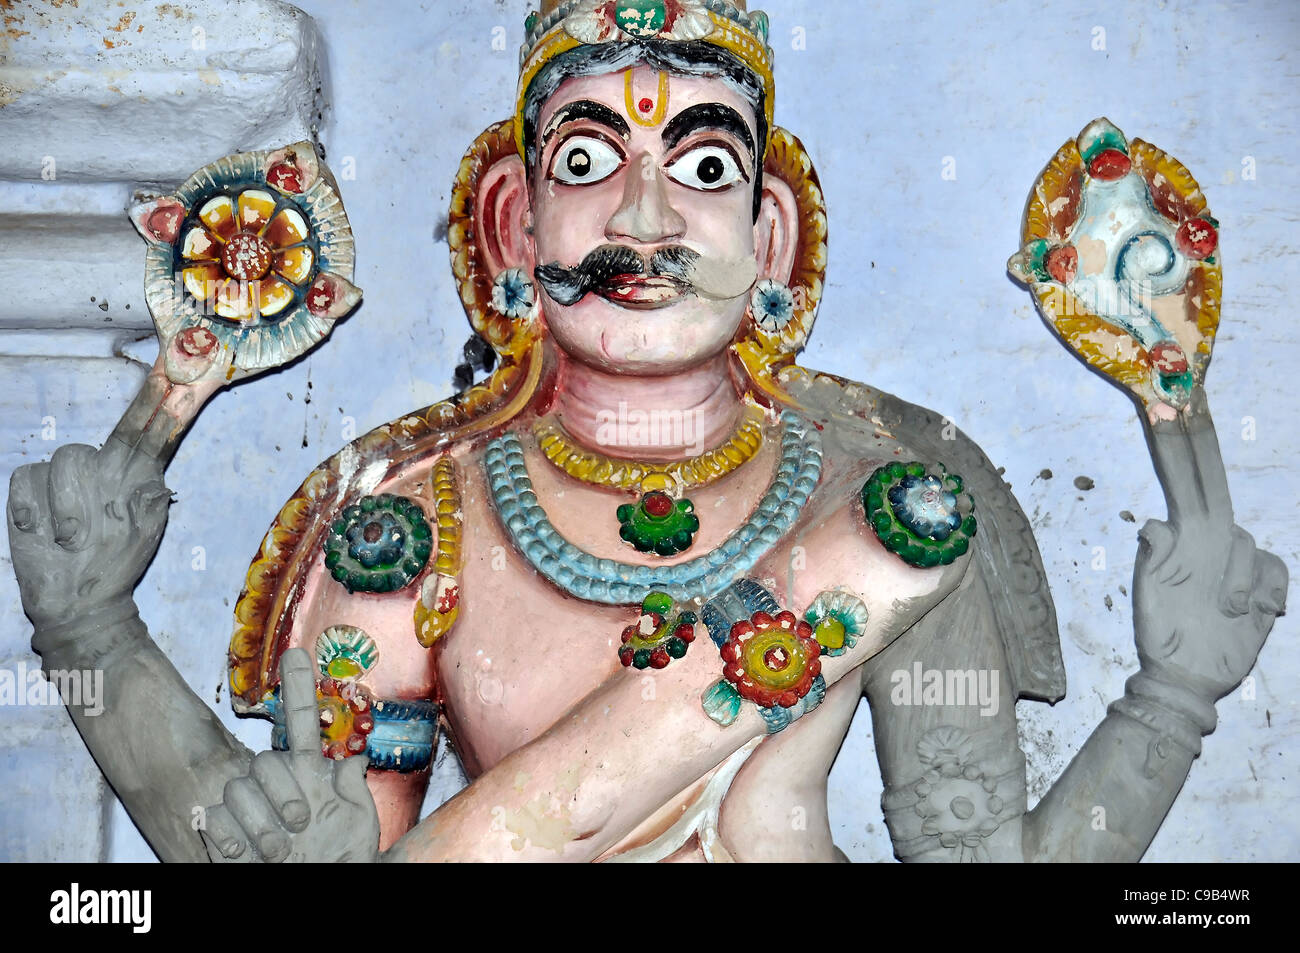 Statue sculpture deity South Indian temple Chennai 'South India' 'Traditional Indian',religion,mythology - Stock Image